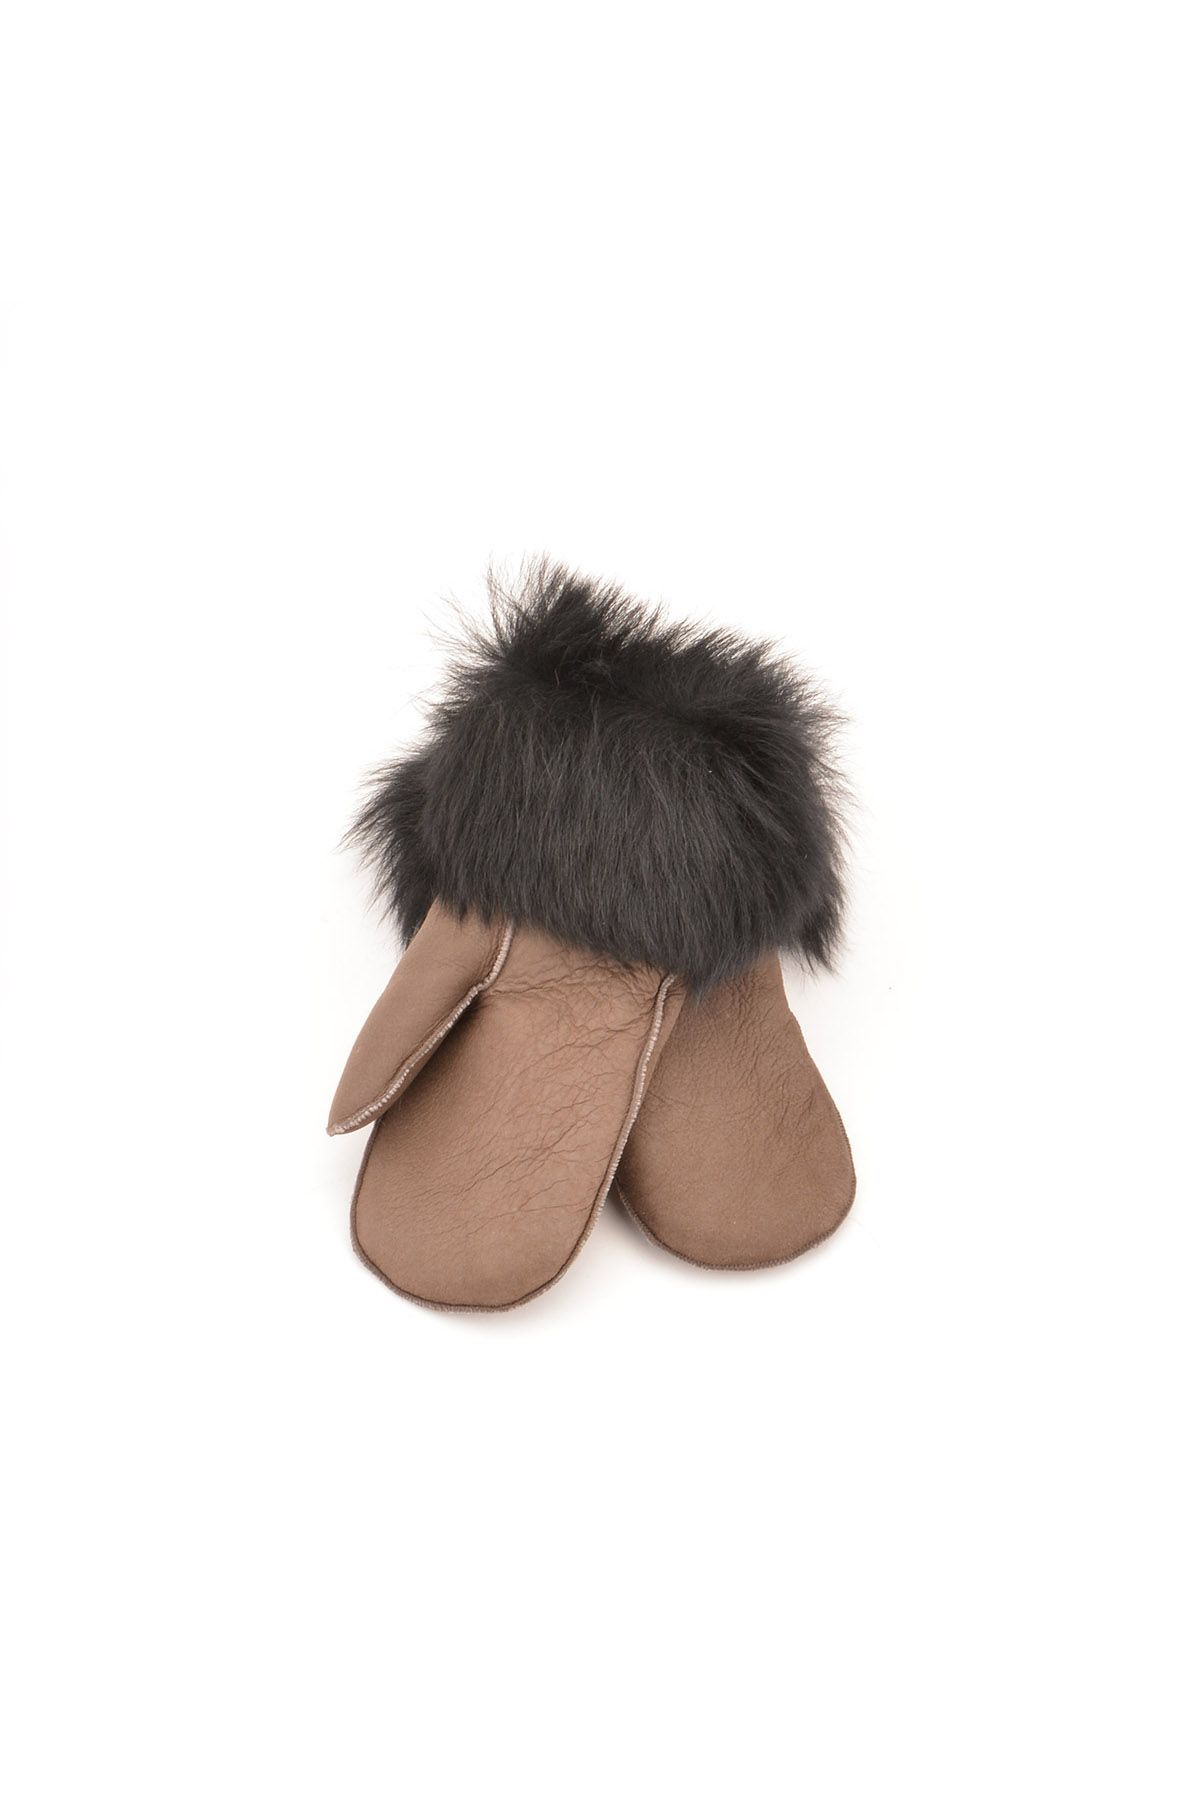 Pegia Kids Gloves From Genuine Leather And Sheepskin Fur Black